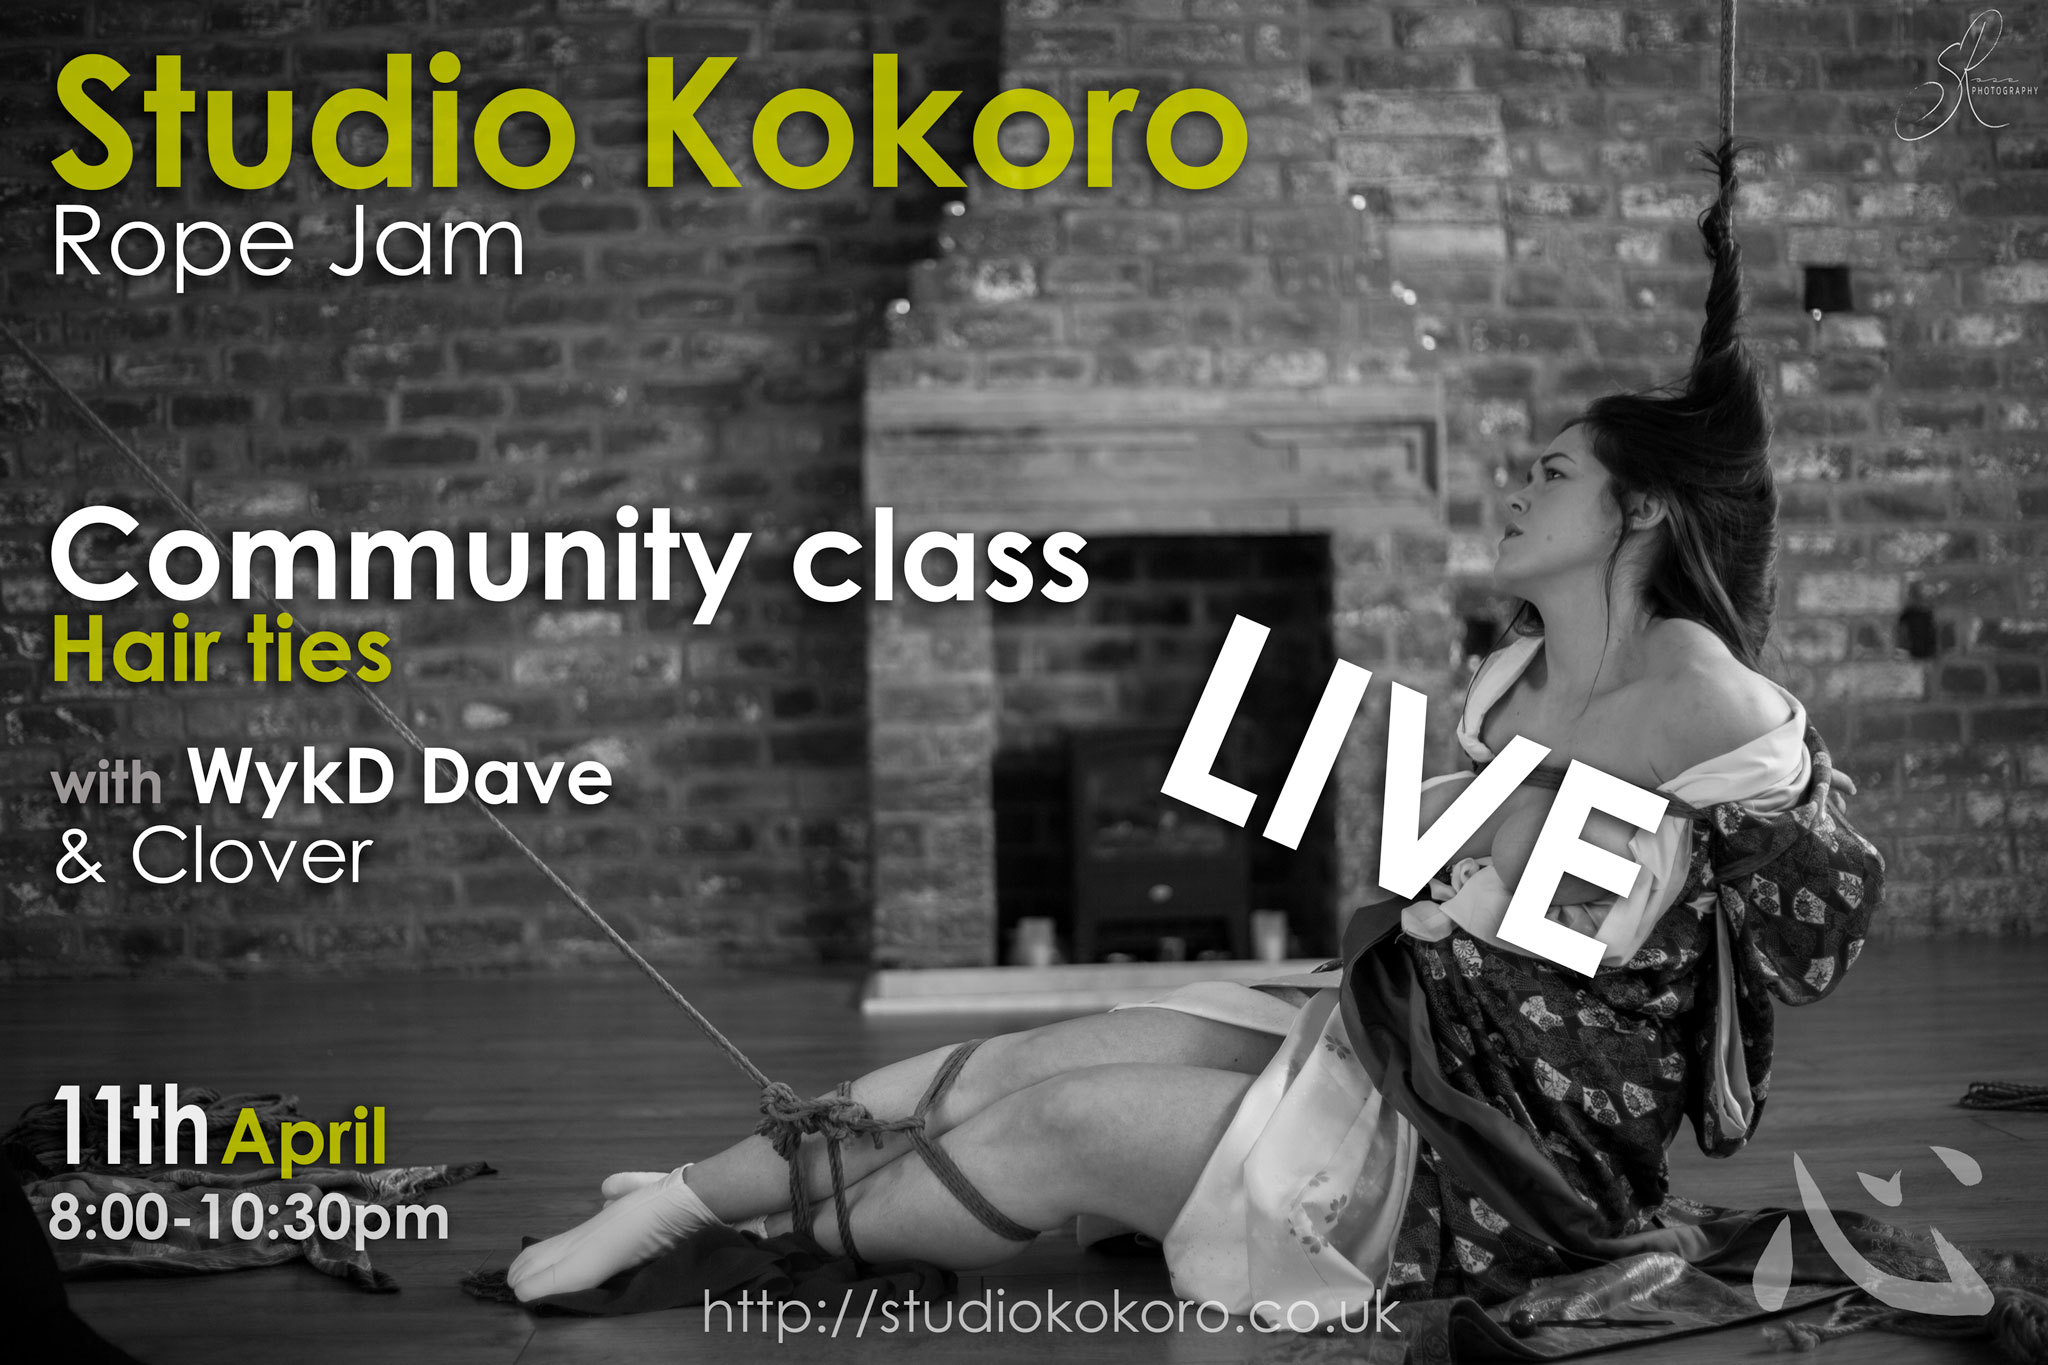 April 2020 Studio Kokoro Rope Jam with hair ties community class by WykD Dave & Clover